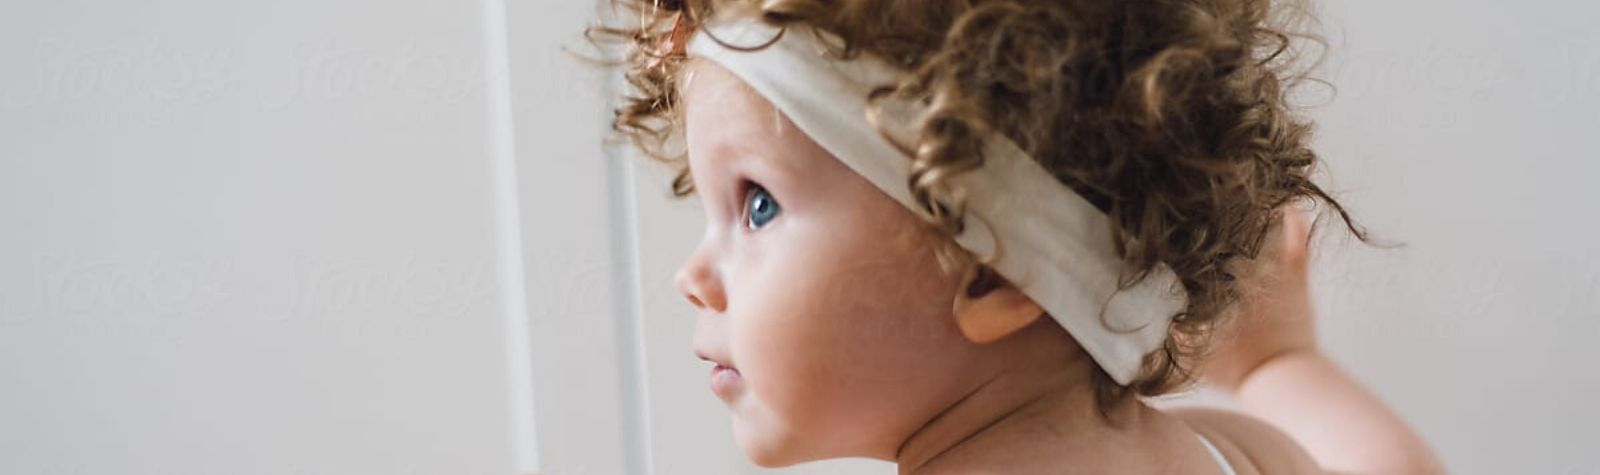 Best baby shampoo for curly hair: Guide for Parents